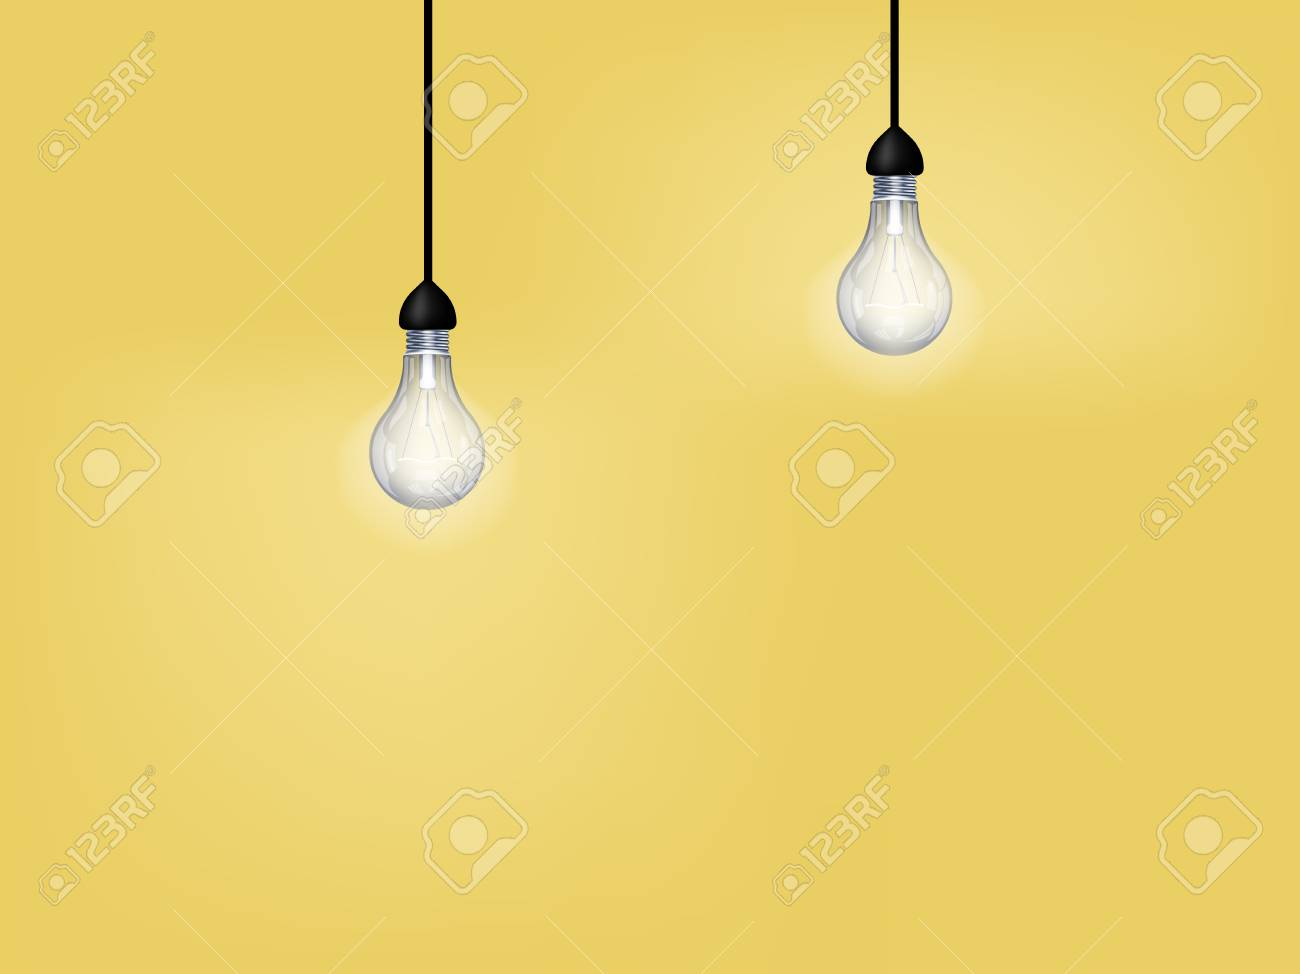 Beautiful graphic design of light bulb on yellow background with